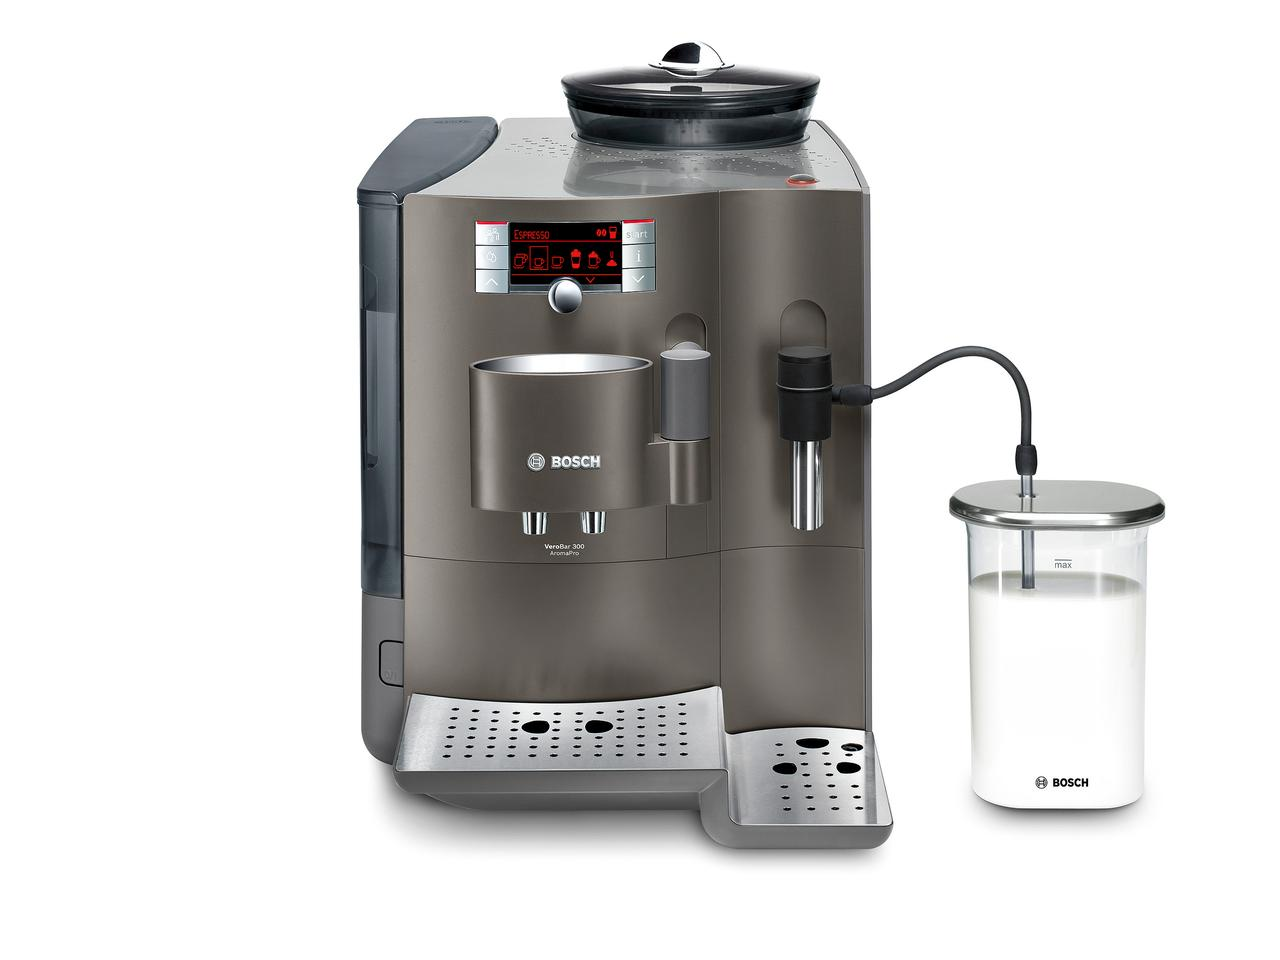 Bosch's VeroBar AromaPro coffee maker is able to identify the type of coffee beans loaded into it